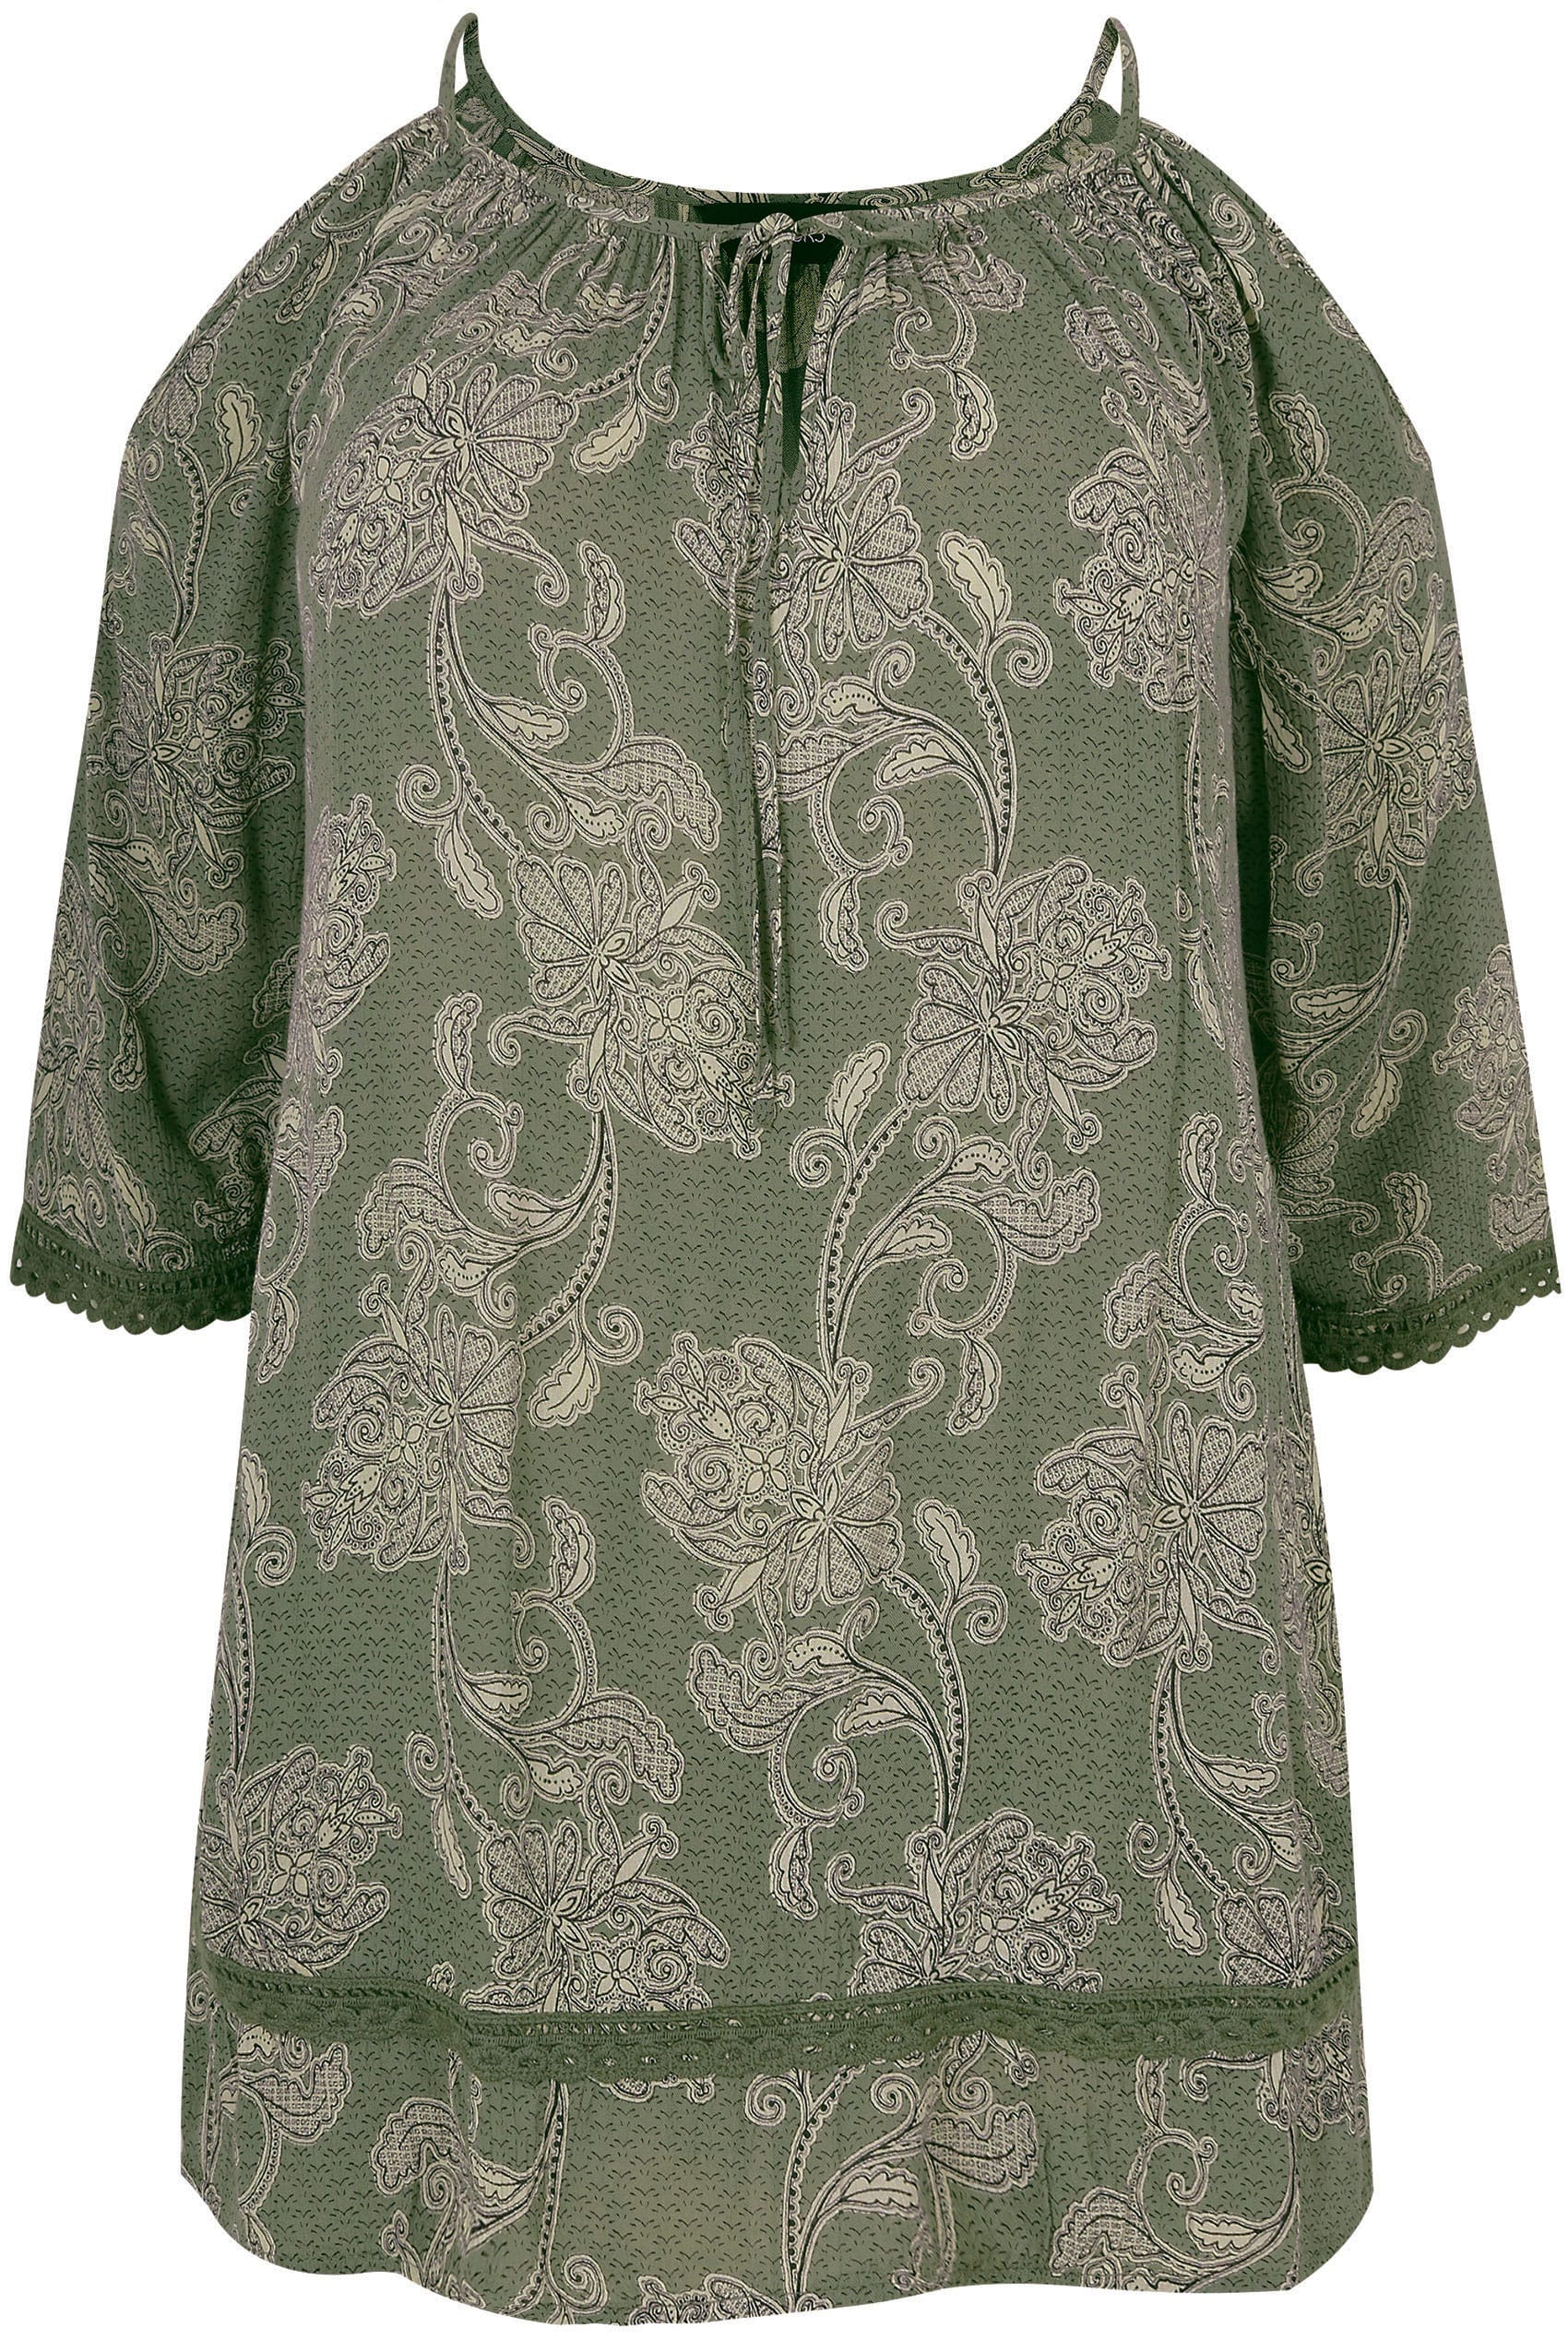 fbb7ce633b27e3 Khaki Paisley Print Top With Cold Shoulder Cut Outs